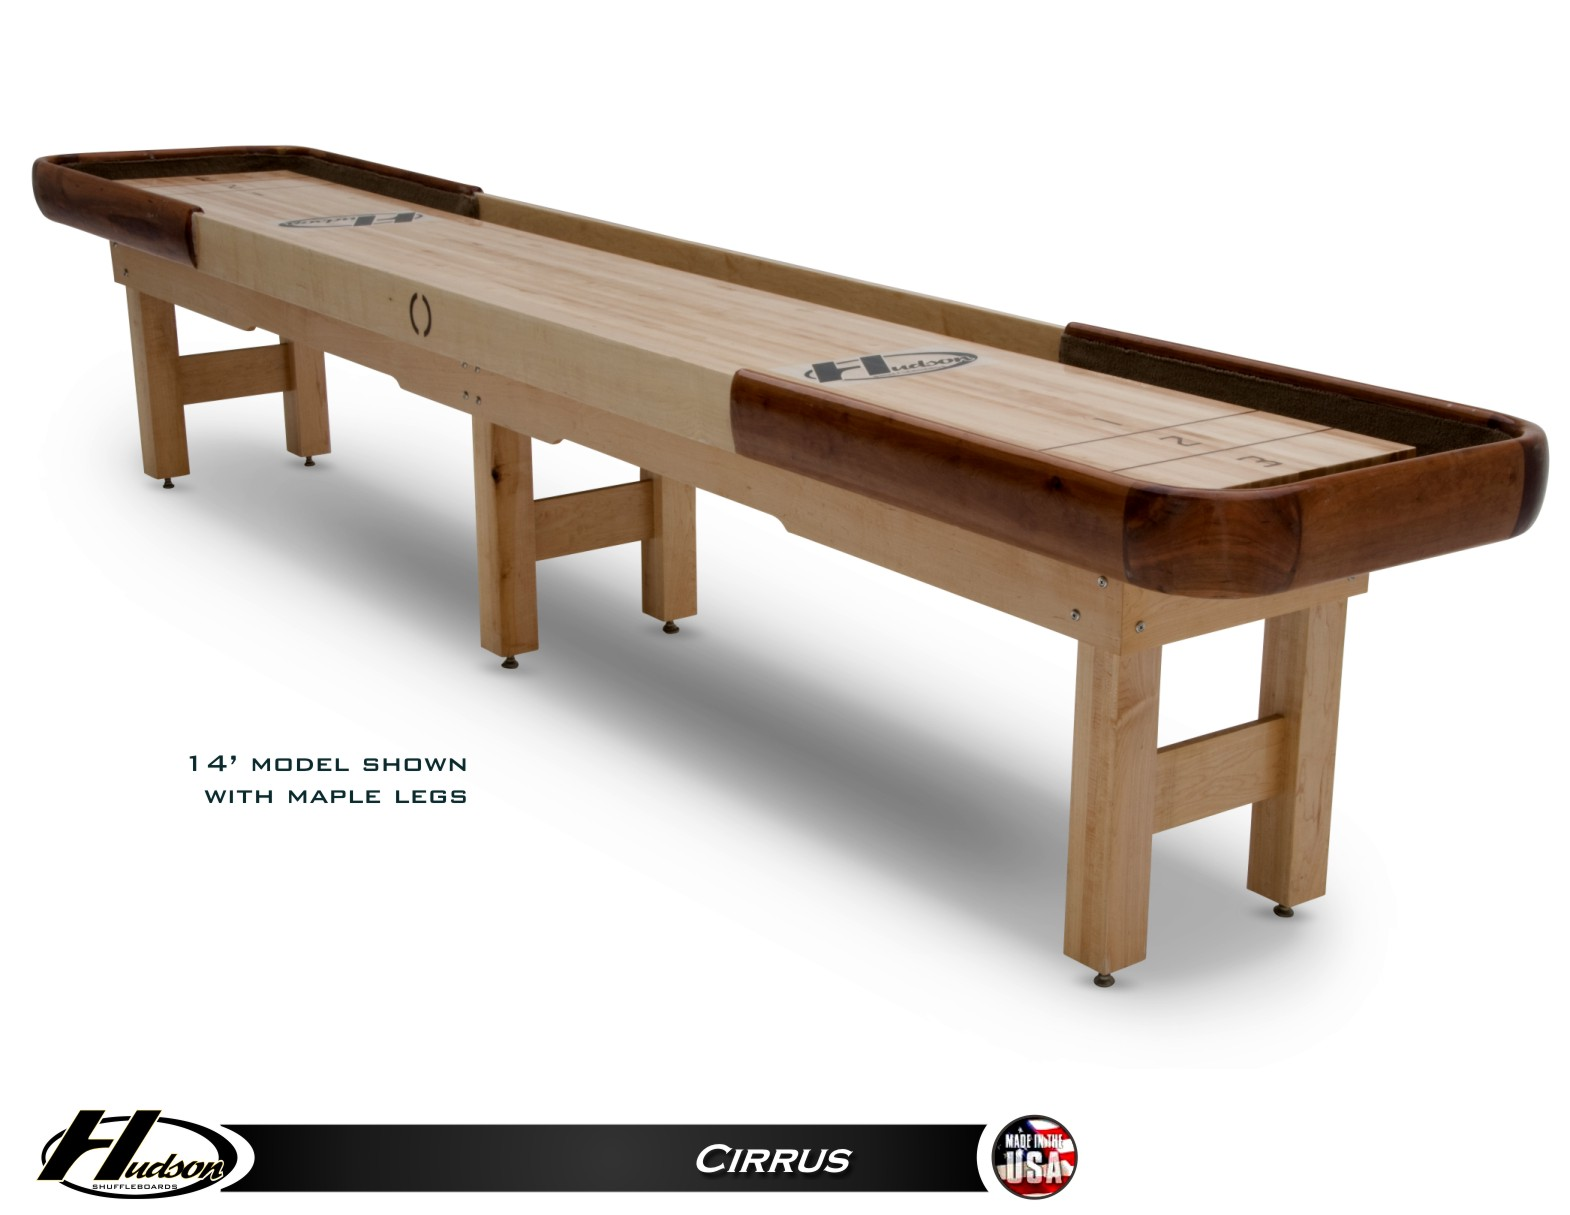 20u0027 Cirrus Outdoor Shuffleboard Table